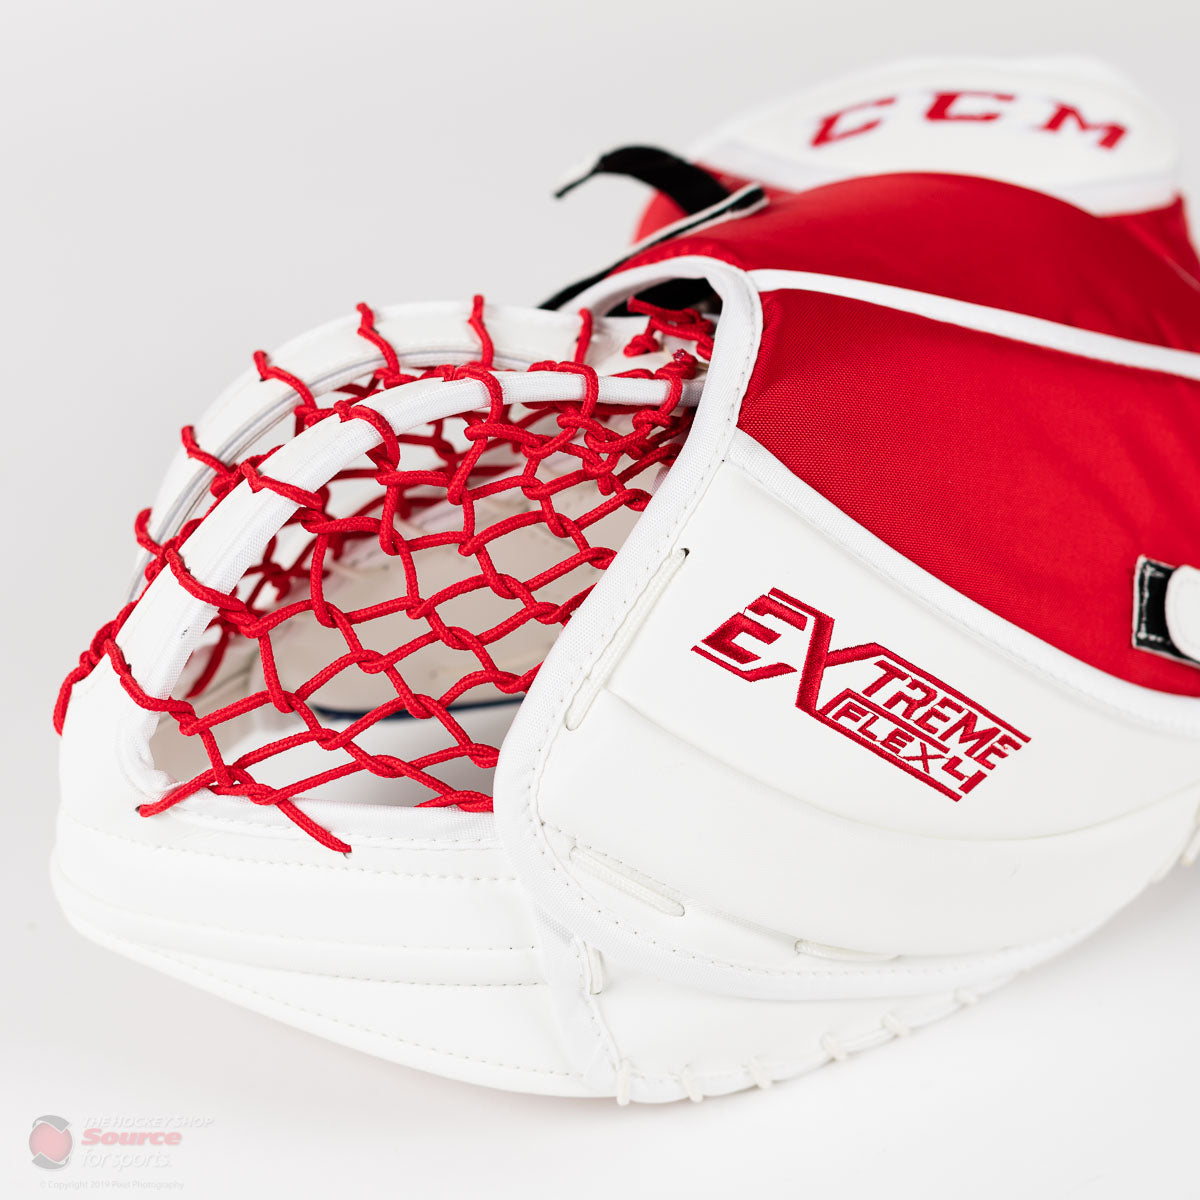 CCM Extreme Flex 4 Trapper and Blocker